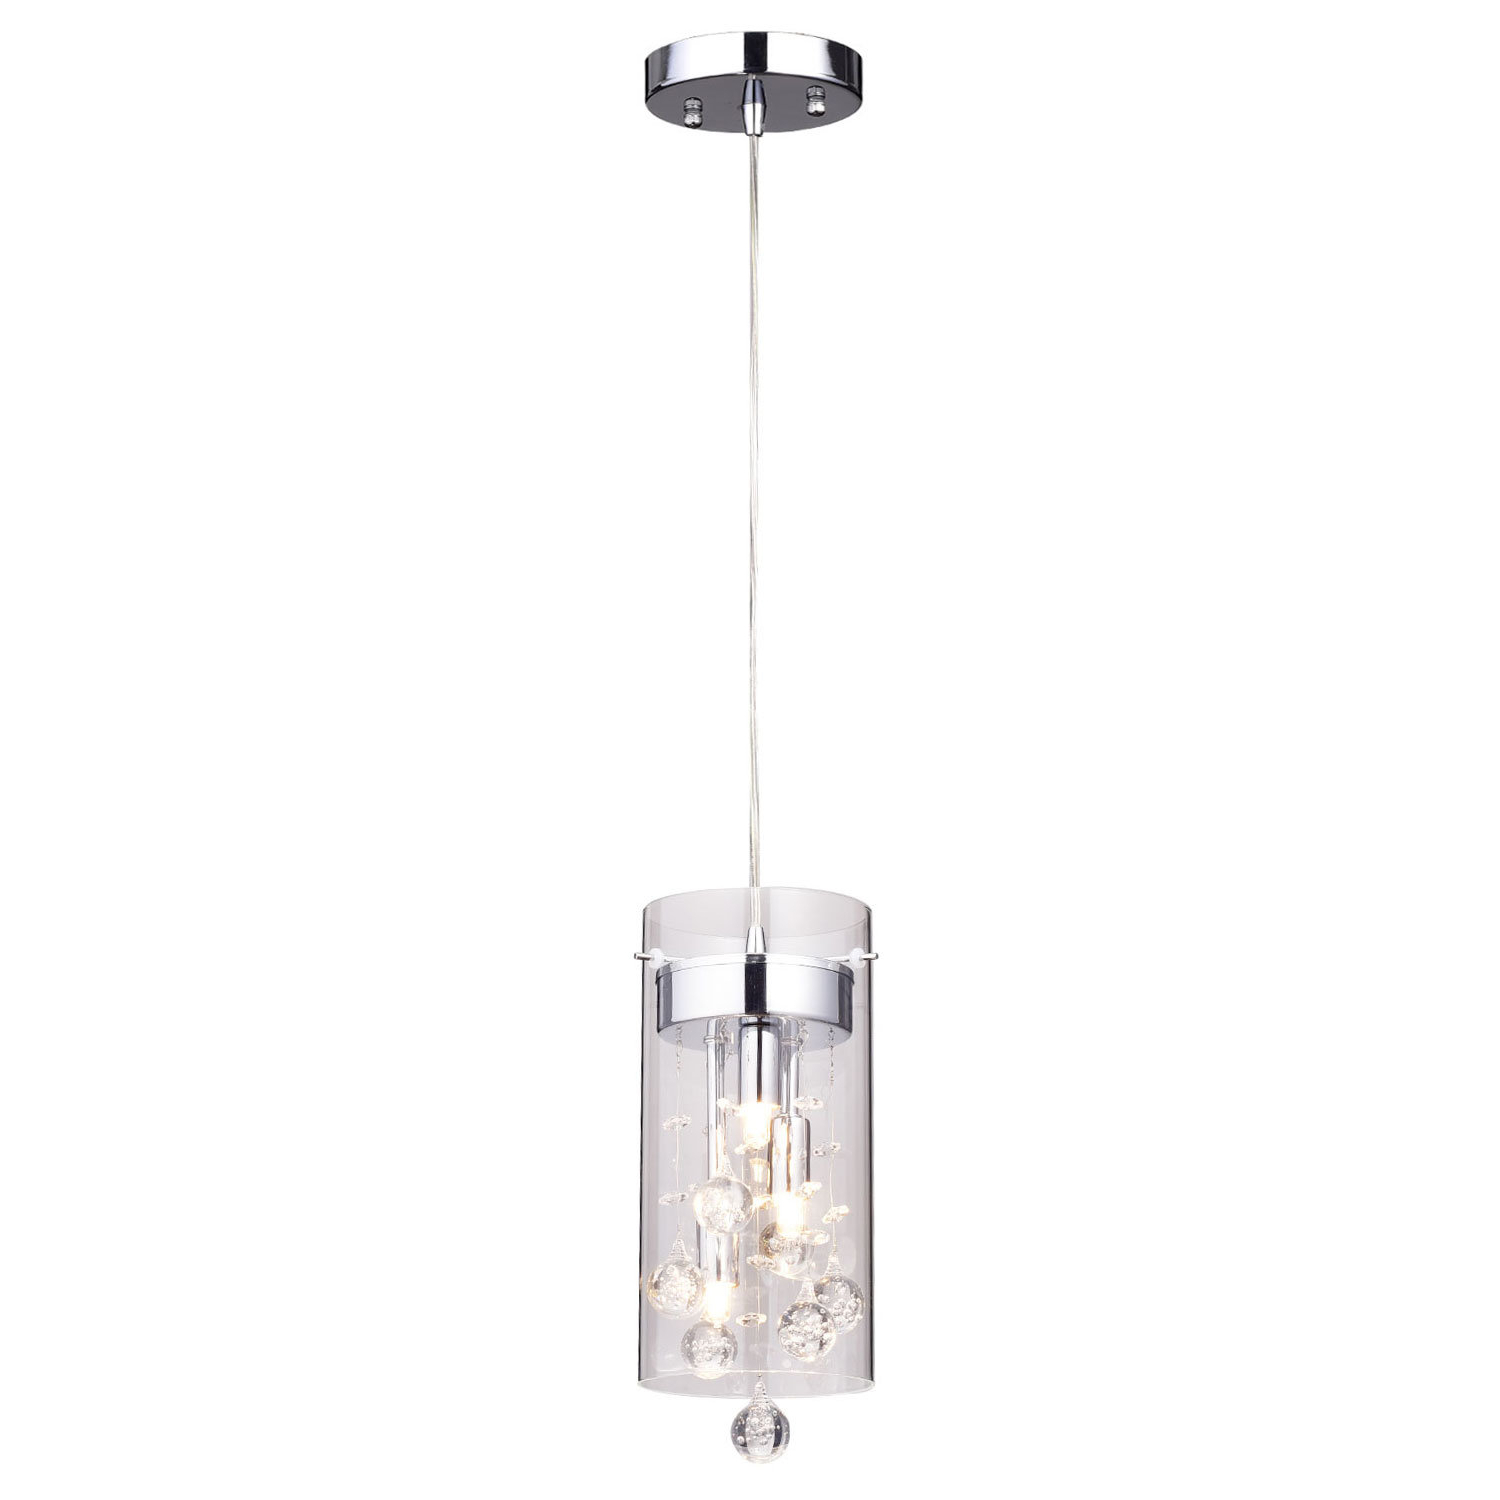 "Kraker 1 Light Single Cylinder Pendants Intended For Newest Crystal Mini (Less Than 10"" Wide) Pendant Lighting You'll (View 7 of 25)"